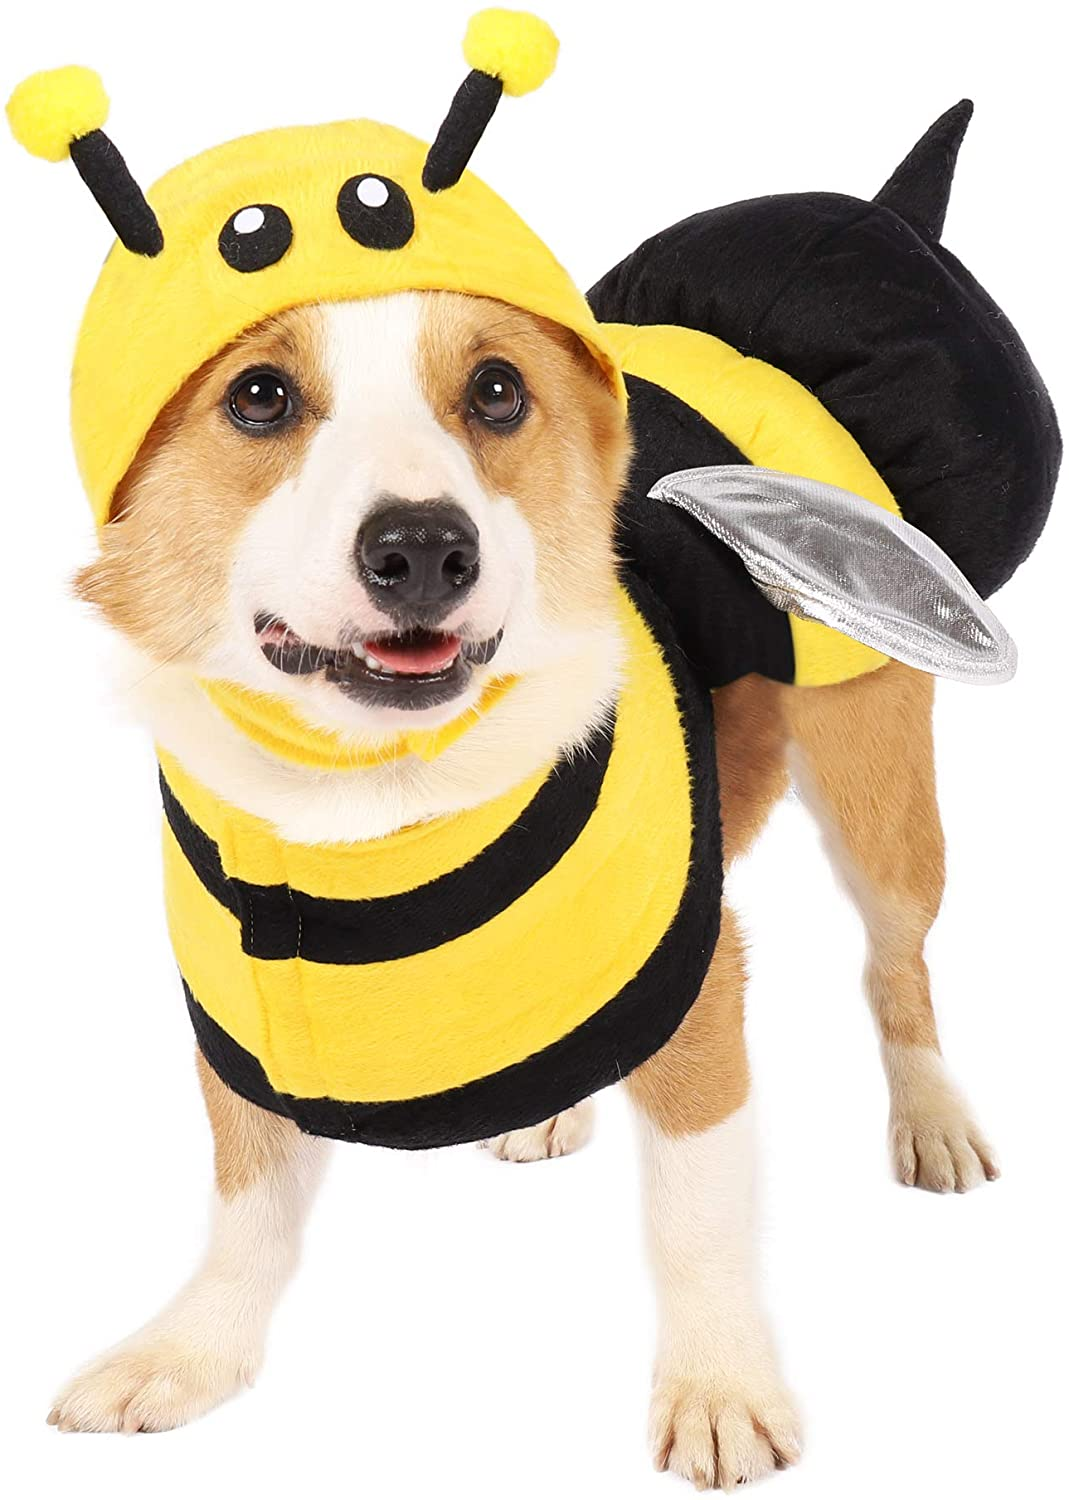 Spooktacular Creations Halloween Bee Dog Pet Costume for Halloween Dress-up Party, Role Play, Carnival Cosplay, Holiday Decorations Clothes